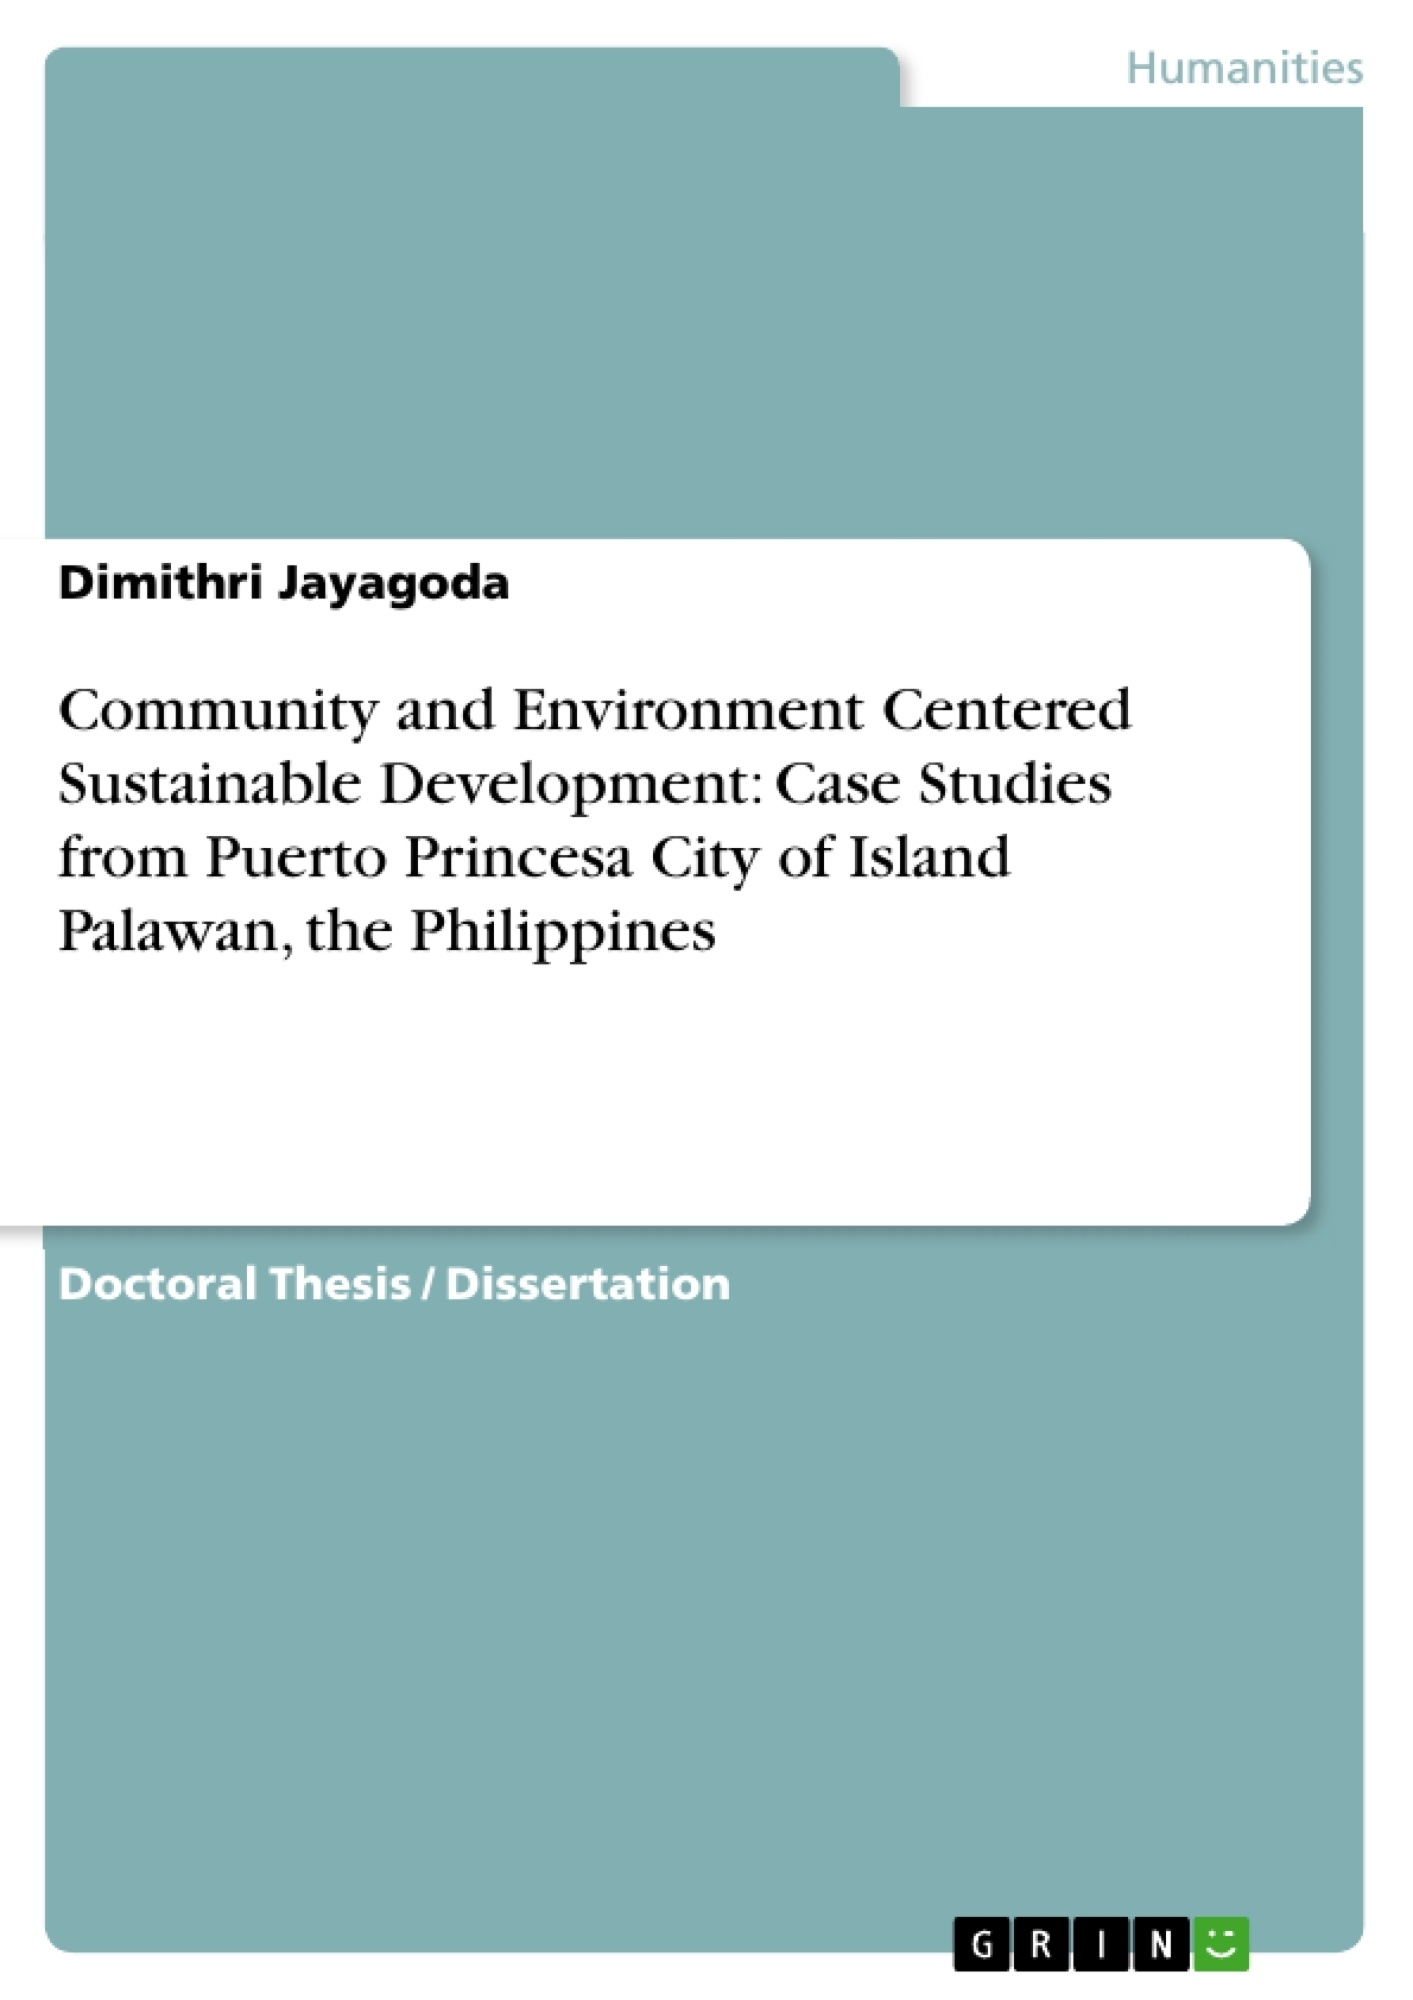 Title: Community and Environment Centered Sustainable Development: Case Studies from Puerto Princesa City of Island Palawan, the Philippines